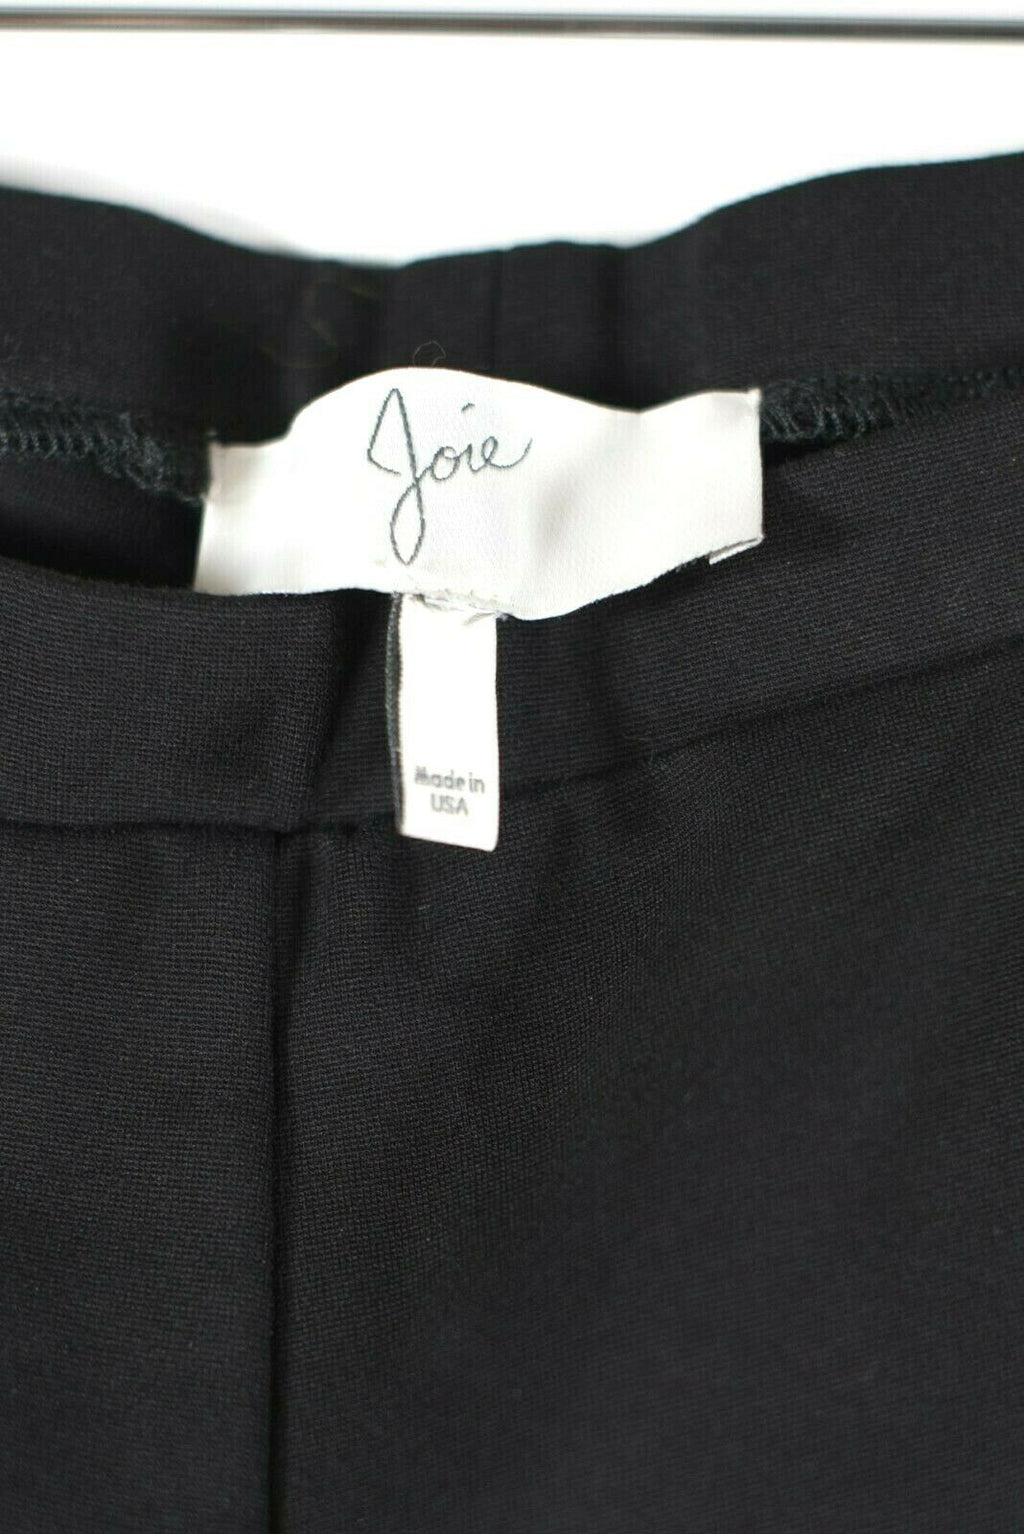 Joie Womens Medium Black Pants Elastic Waist Pull-on Knit Cropped Trousers $168